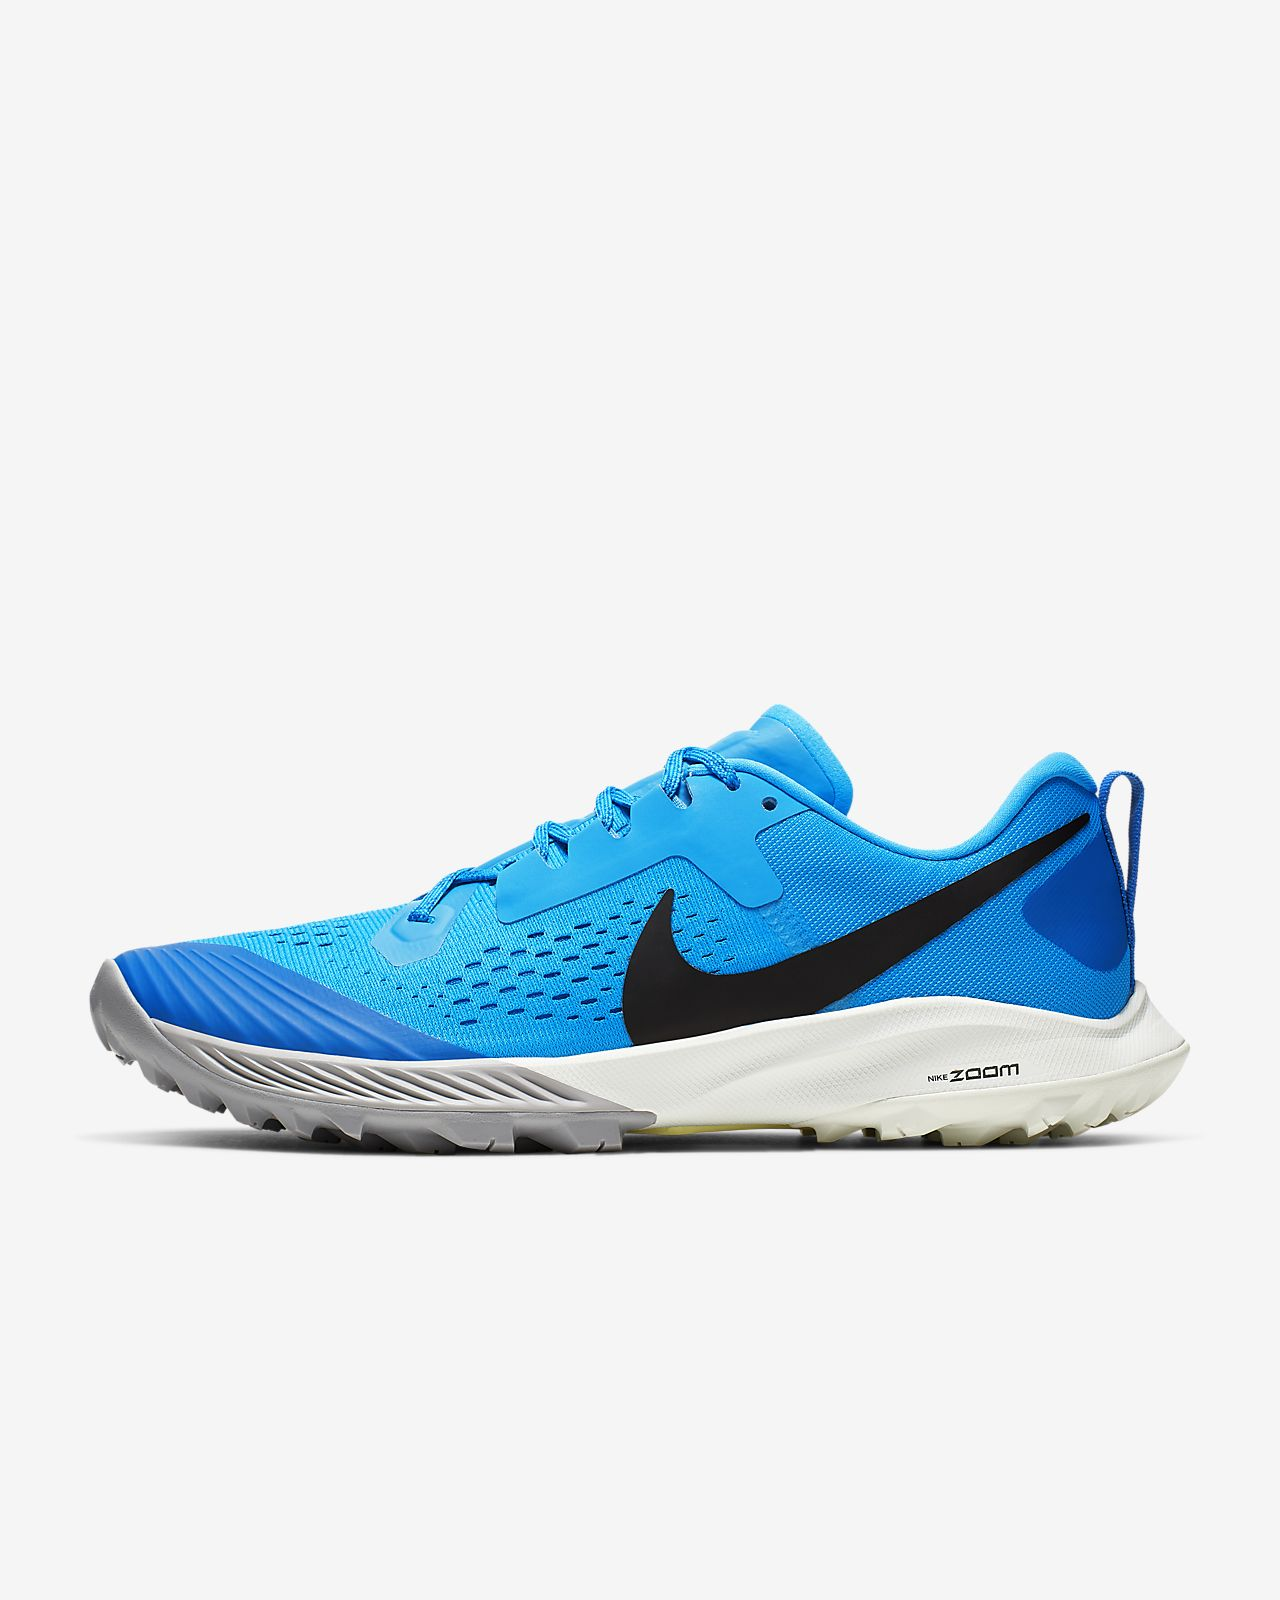 Chaussure de running Nike Air Zoom Terra Kiger 5 pour Homme